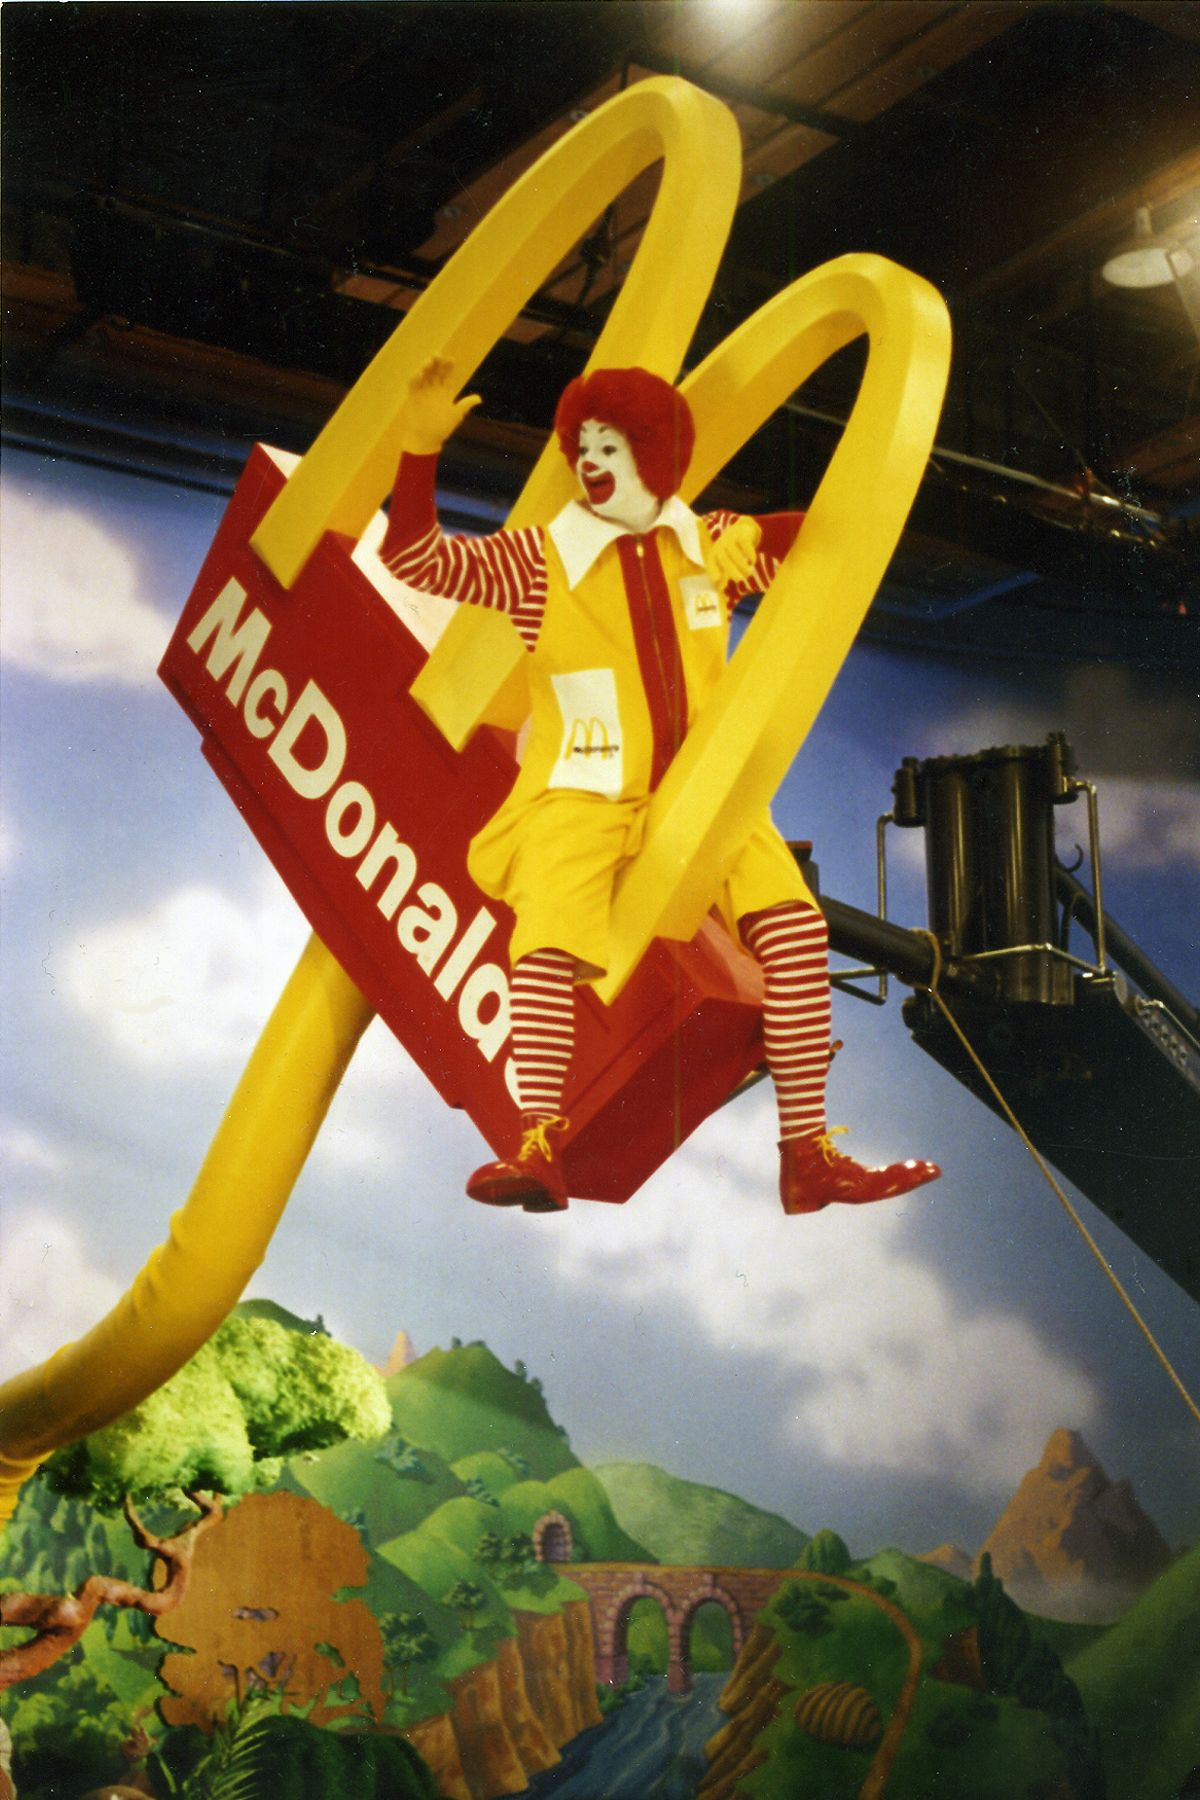 Ronald McDonald and his friends plant a small golden arch